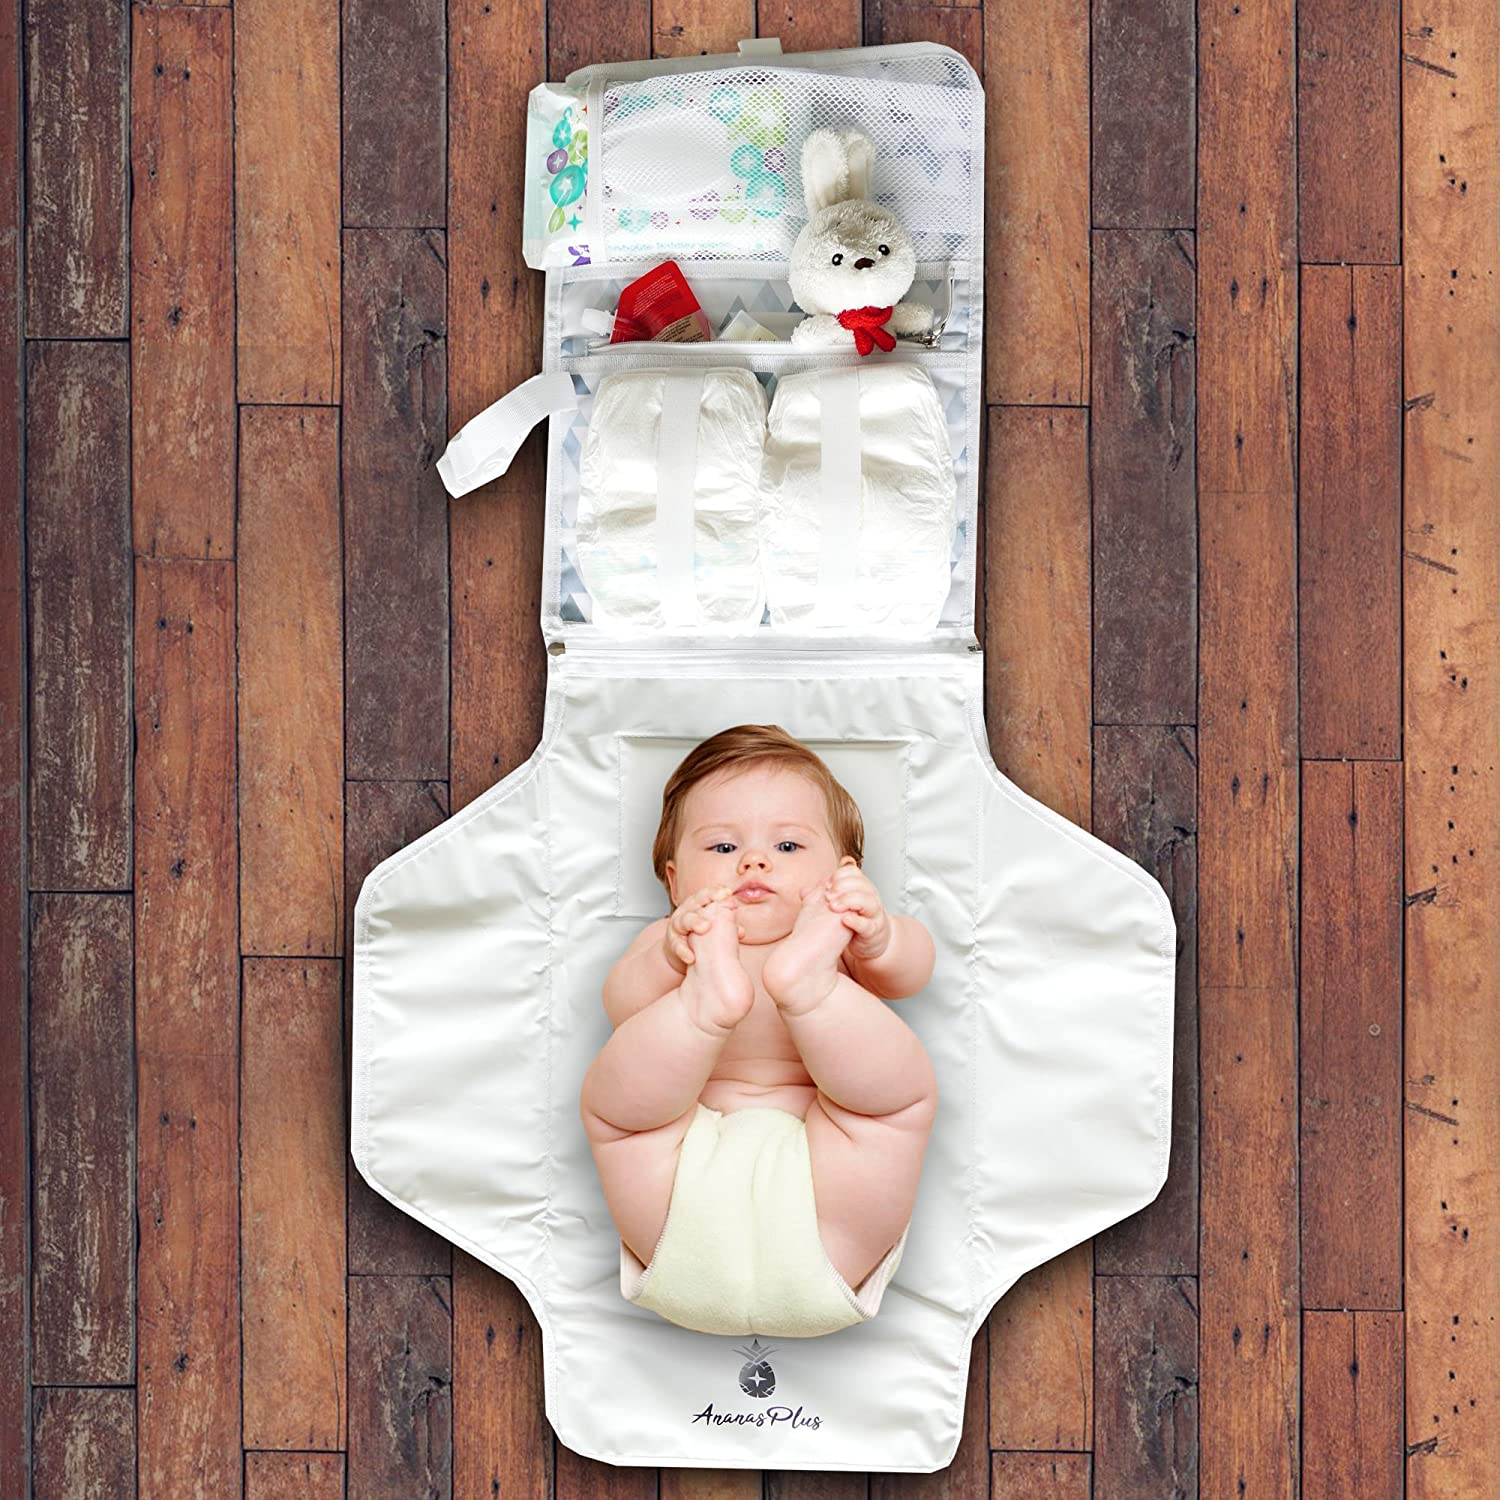 Portable Baby Diaper Changing Station by Ananas Plus Top Baby Shower Gift Waterproof BPA Free Cushioned Contoured Infant Diaper Changing Pad w//Pillow|2-in-1 Travel Changing Station /& Stylish Bag